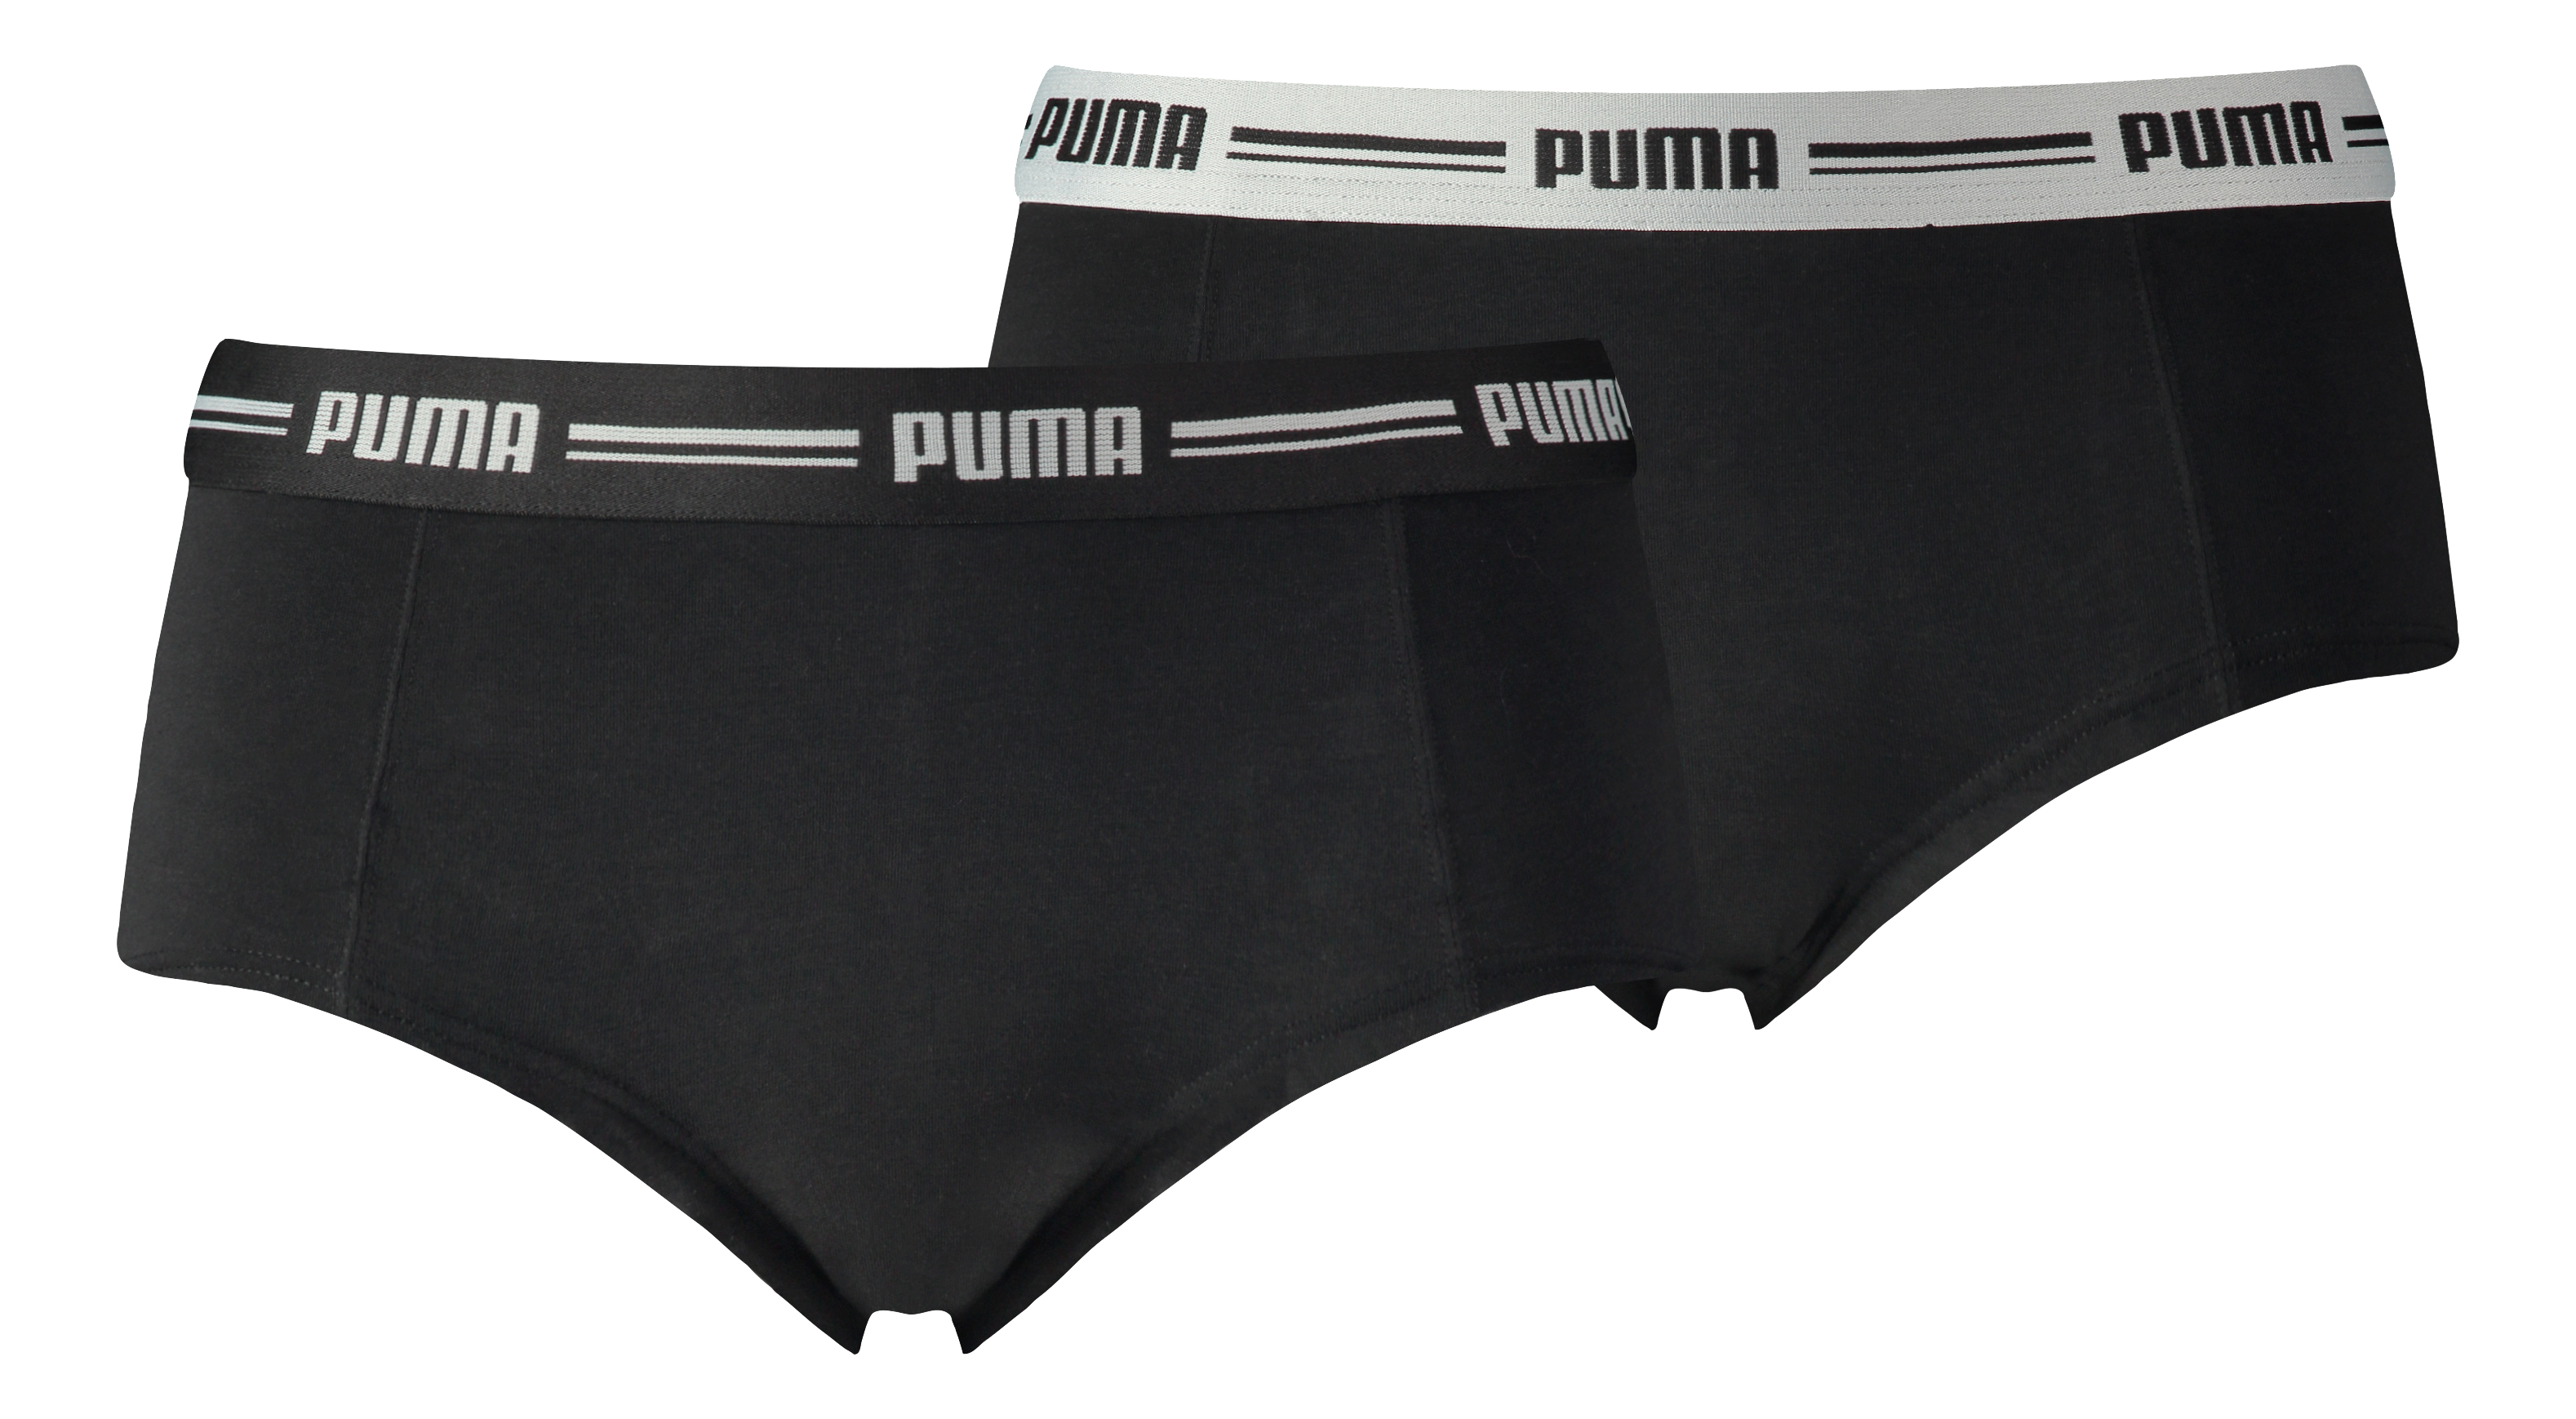 PUMA Damenunterhose Mini Short